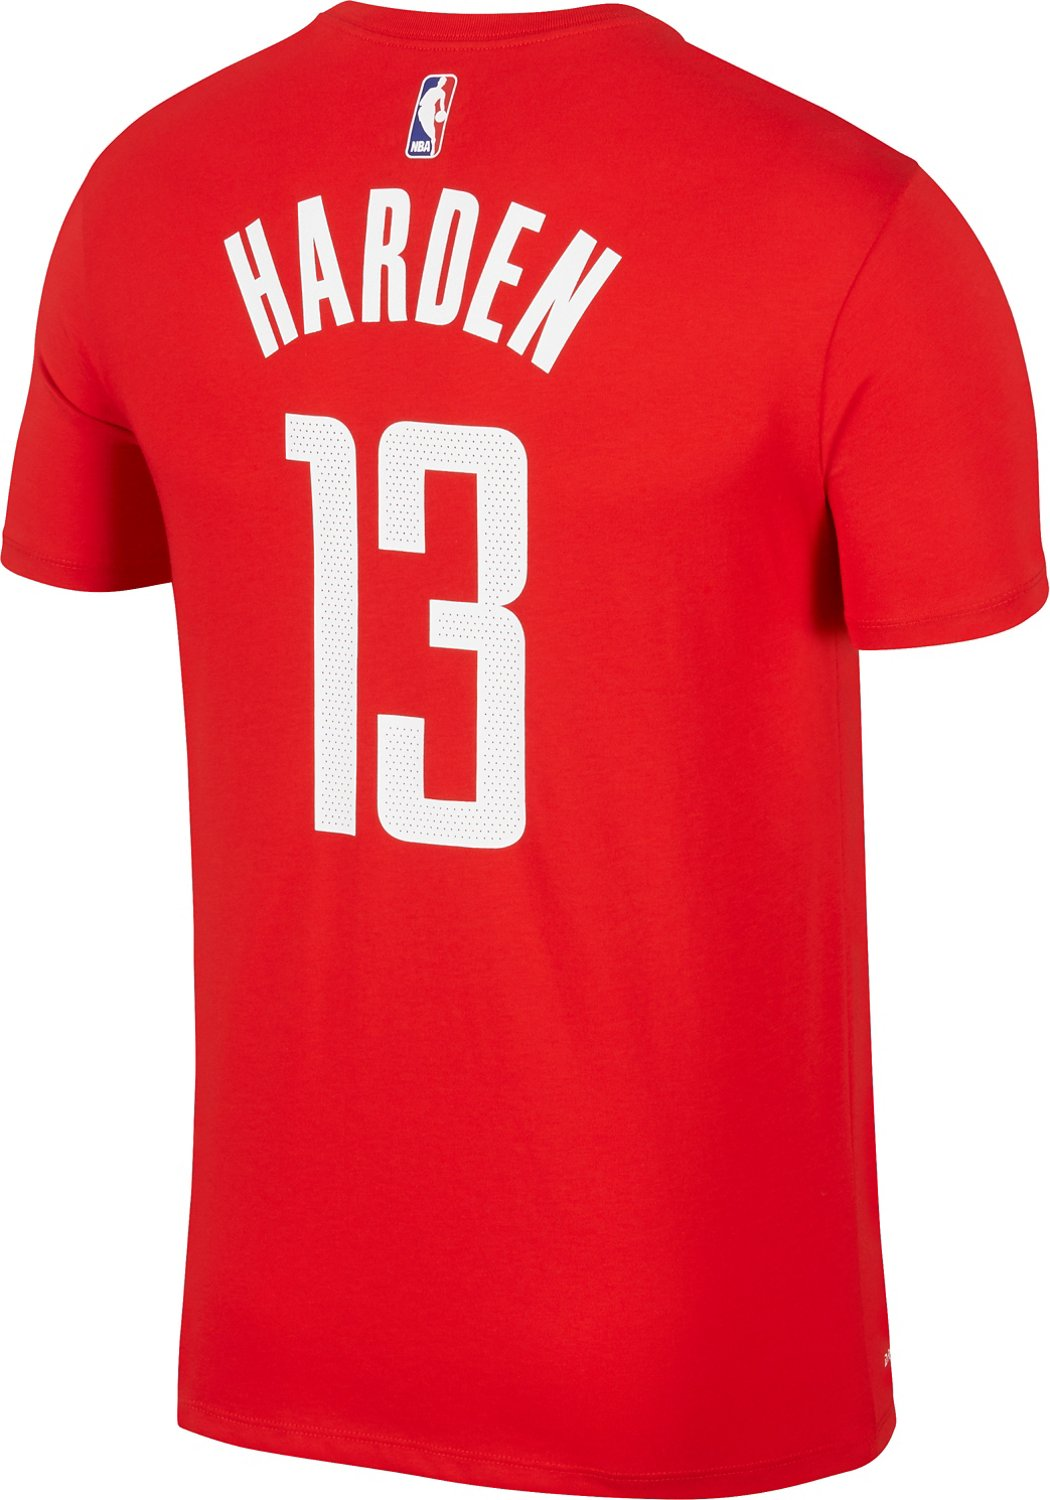 finest selection b219f c4016 Nike Men's Houston Rockets James Harden 13 Name and Number T-shirt